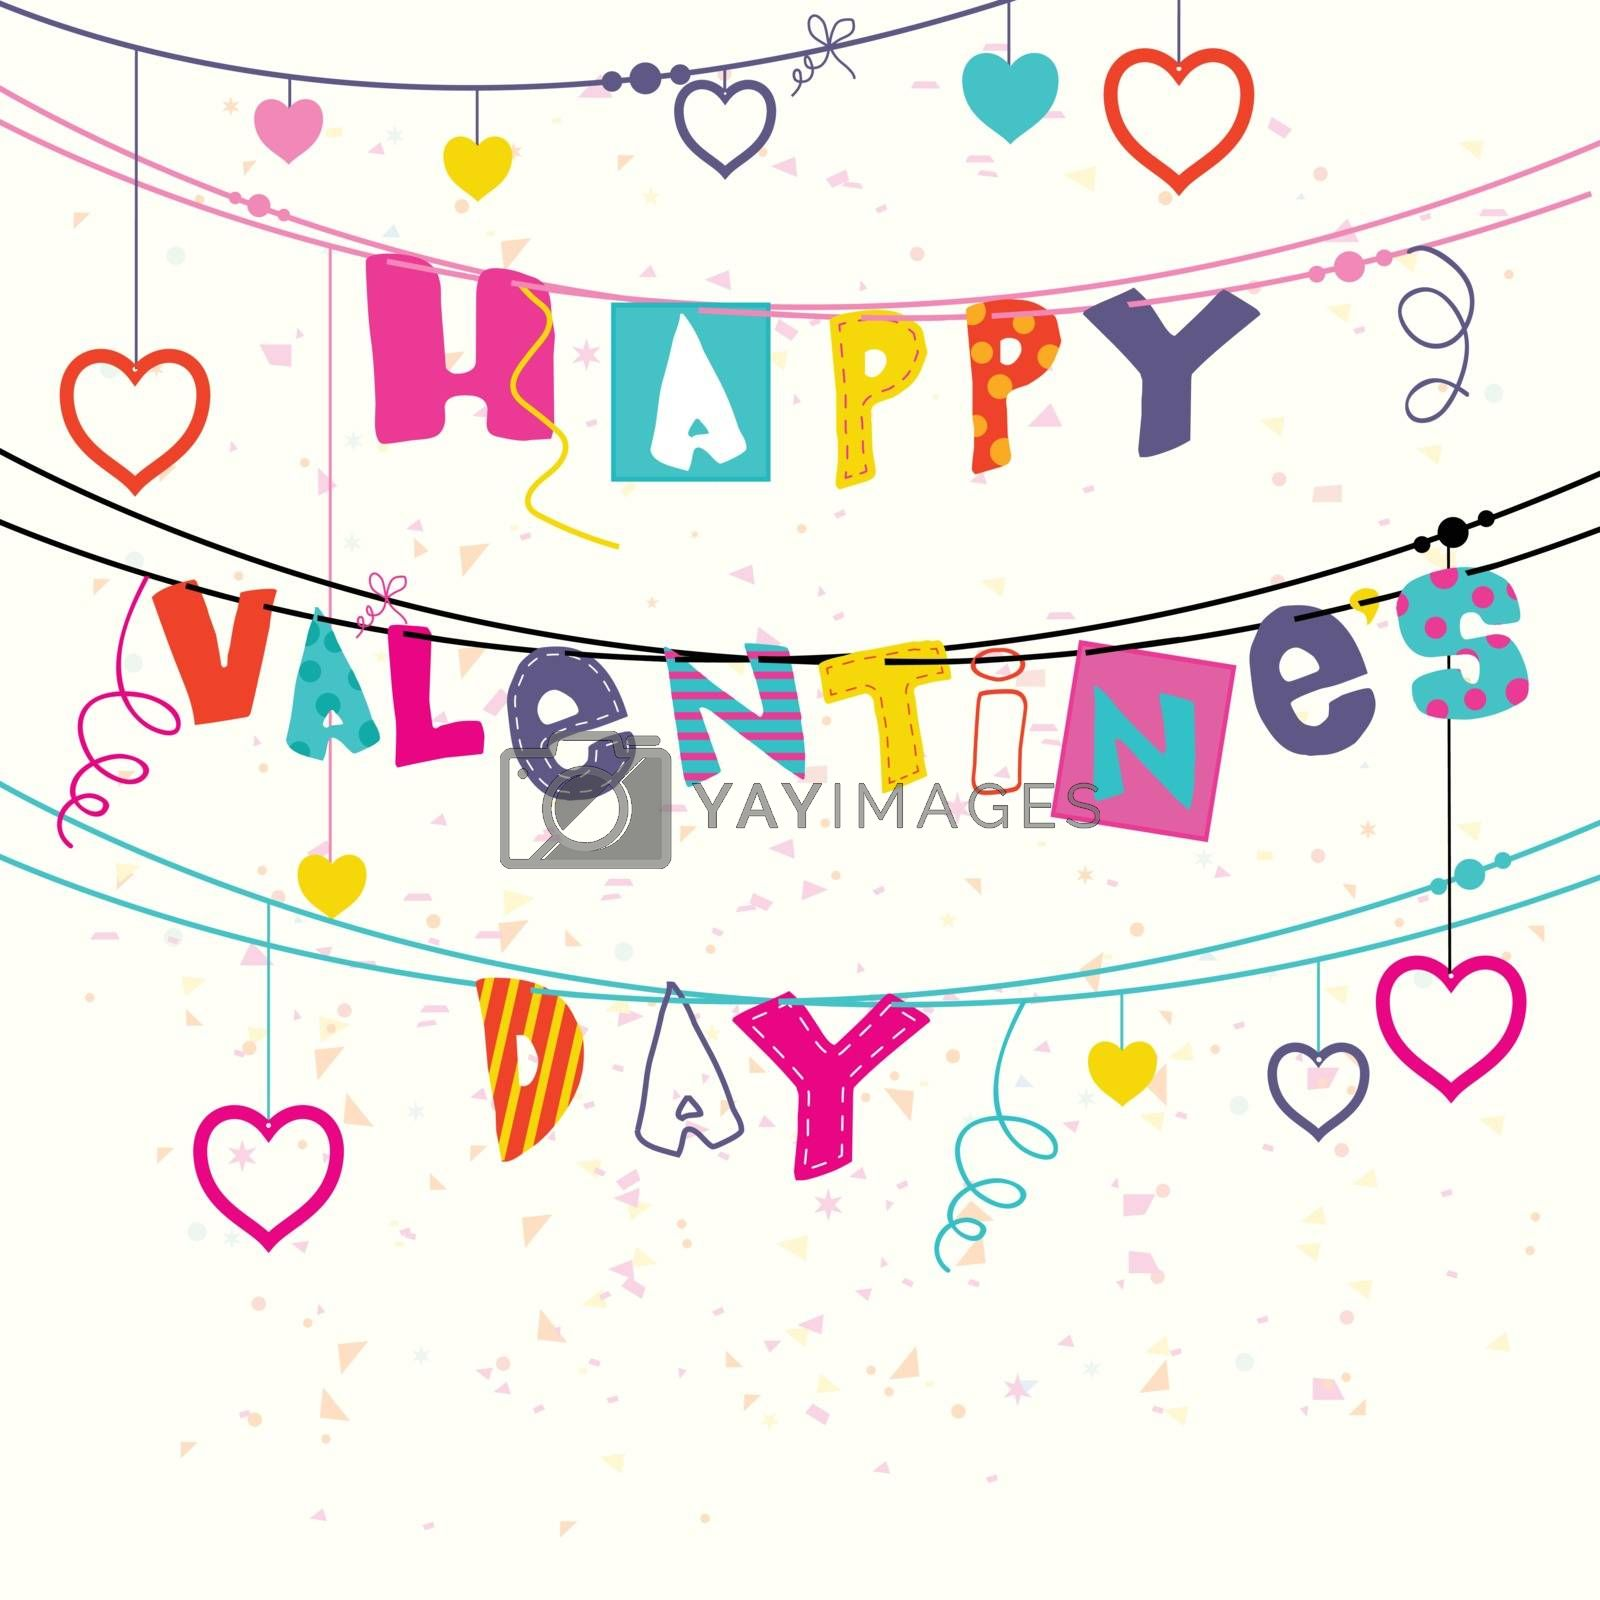 Elegant Greeting Card design with Colorful Text Happy Valentine's Day and hanging hearts decoration.